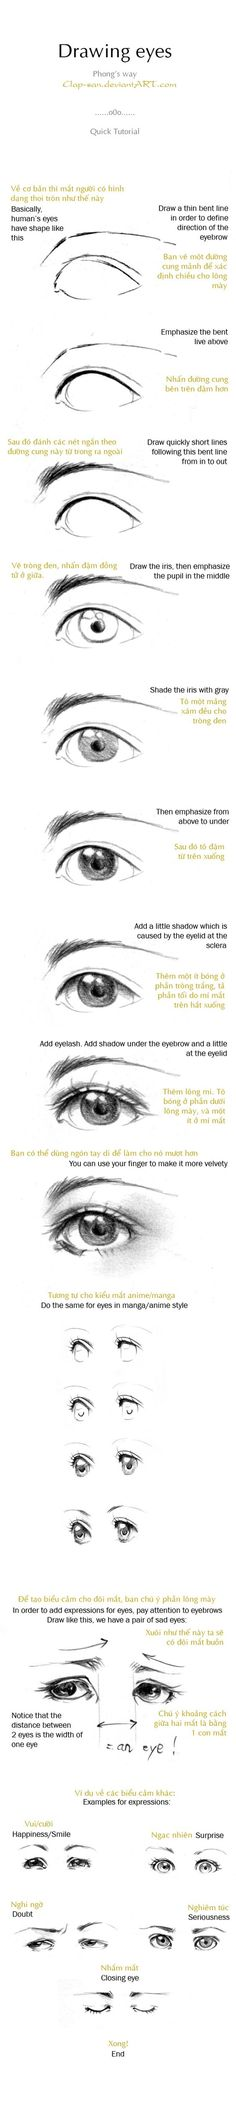 How to draw realistic eyes step by step: